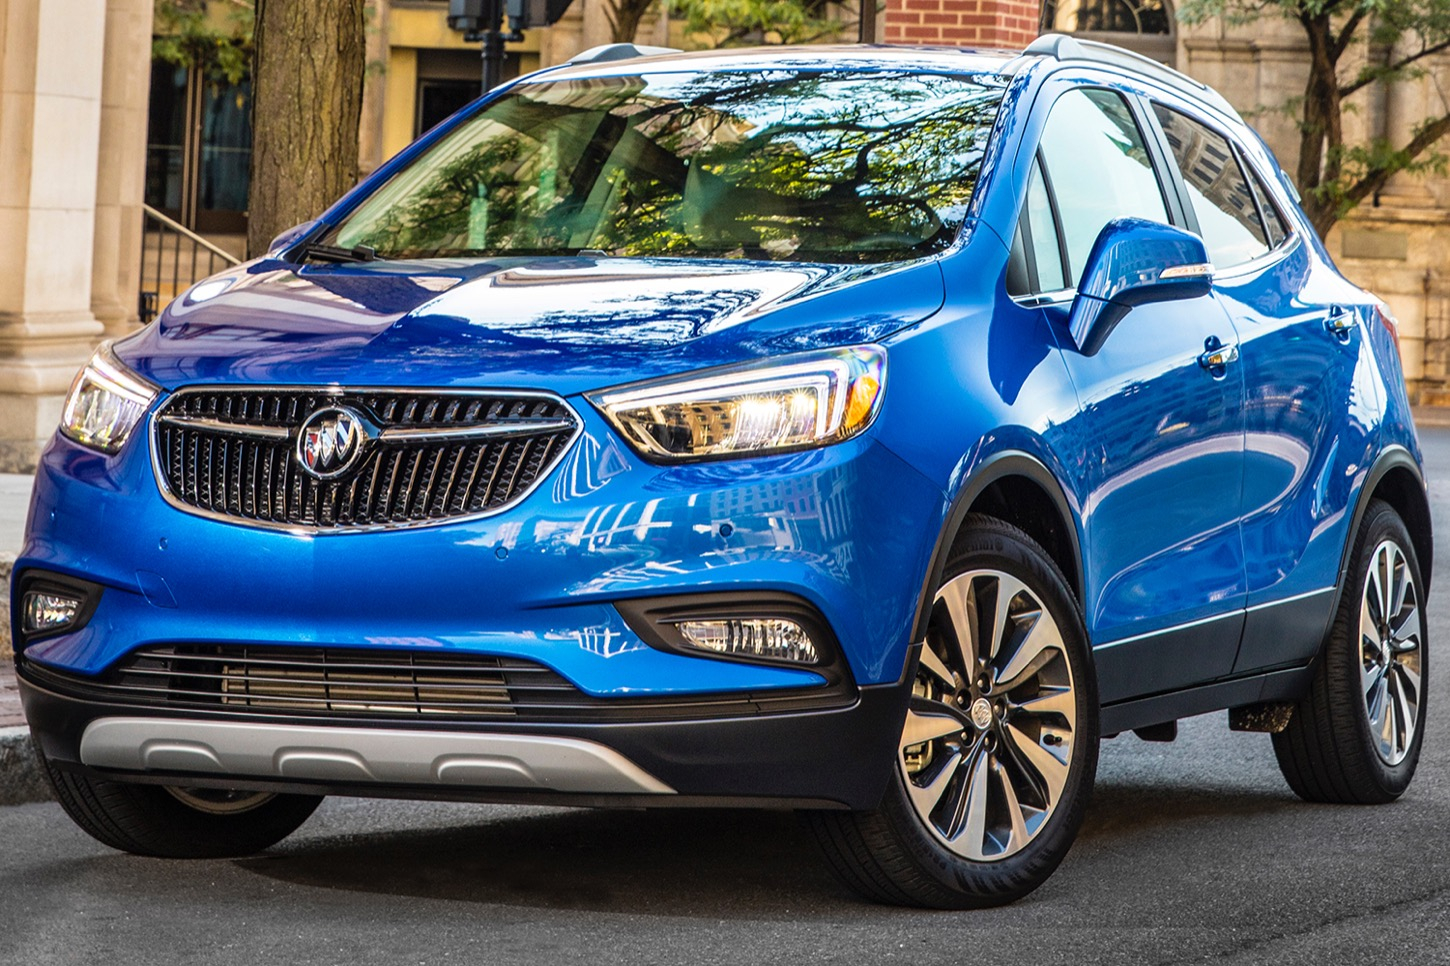 Buick Encore Discount Offers $4,500 Cash In May 2020 | Gm 2021 Buick Encore Msrp, Models, Manual